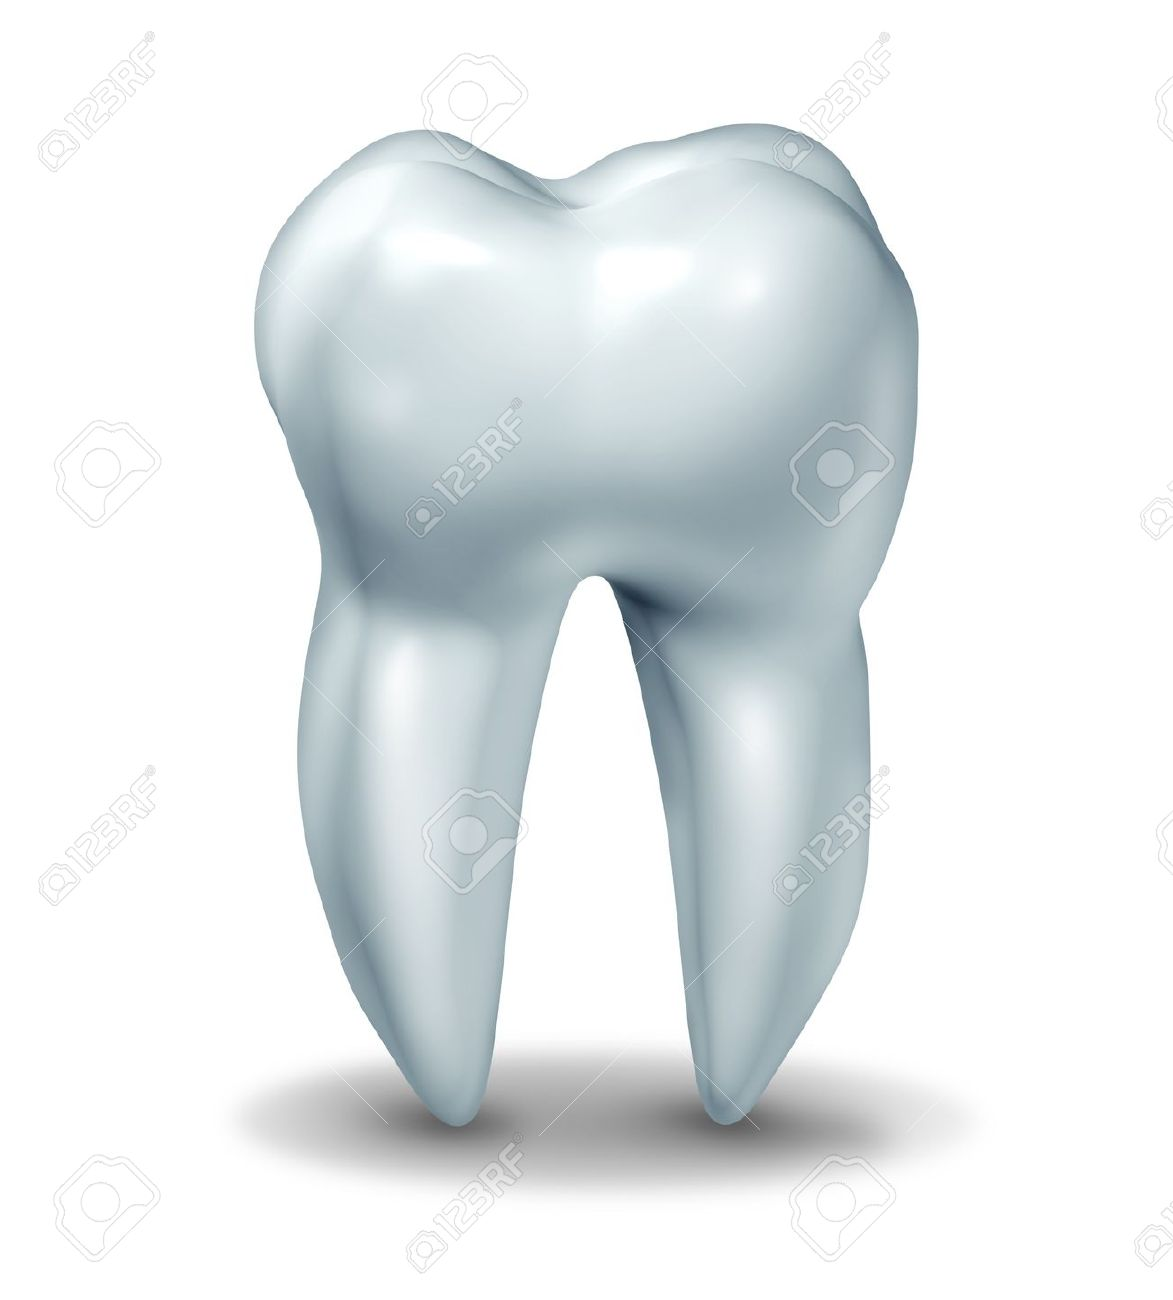 10976391-Dentist-tooth-symbol-for-dental-clinic-and-oral-surgeon-representing-dentist-medicine-and-dentistry--Stock-Photo